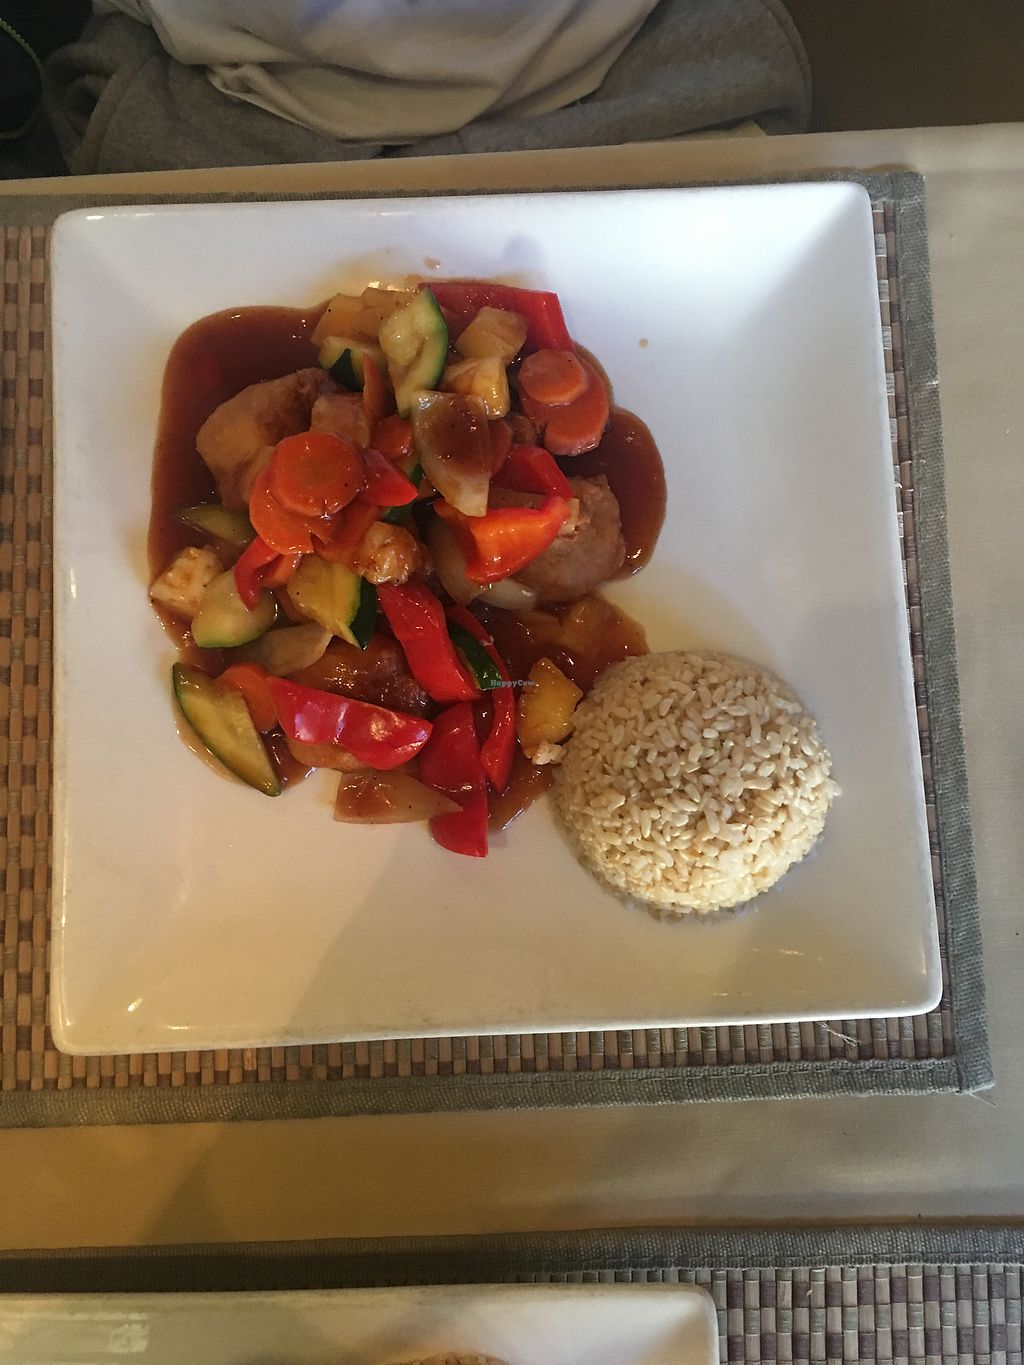 "Photo of Green Earth Vegan Cuisine  by <a href=""/members/profile/TinaCheong"">TinaCheong</a> <br/>Sweet and sour ""chicken"" with brown rice  <br/> March 16, 2018  - <a href='/contact/abuse/image/21789/371417'>Report</a>"